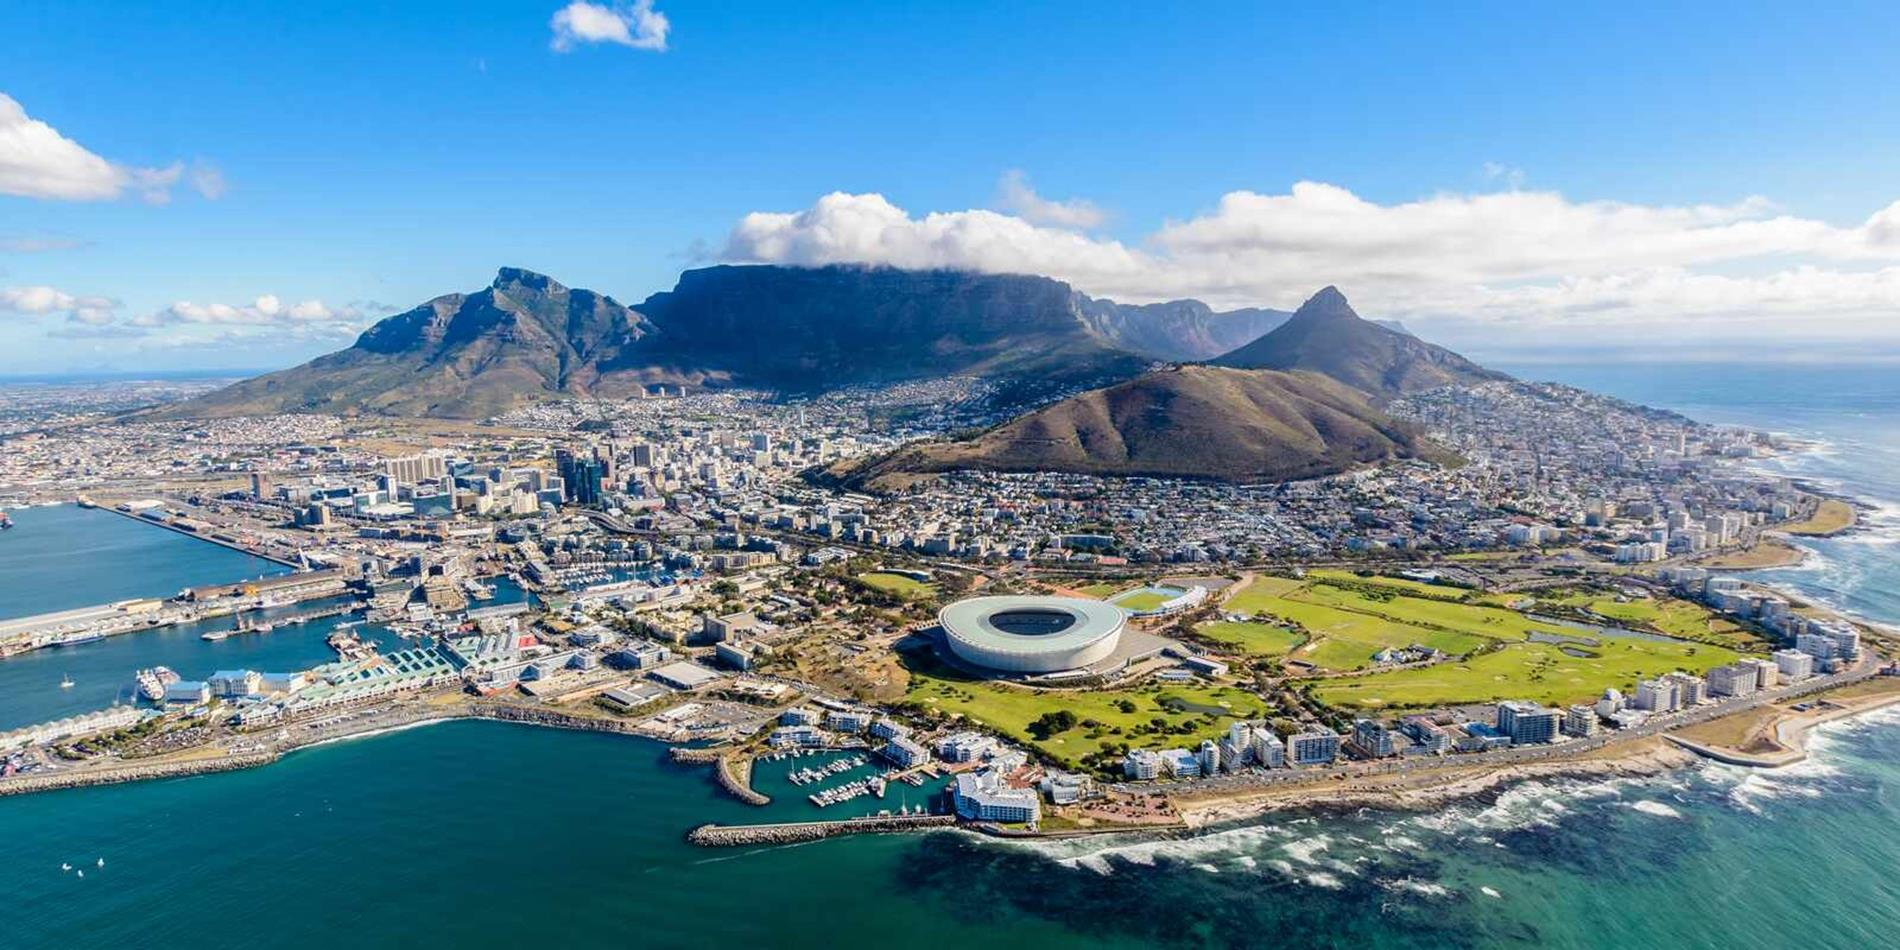 View of Cape Town from above, South Africa